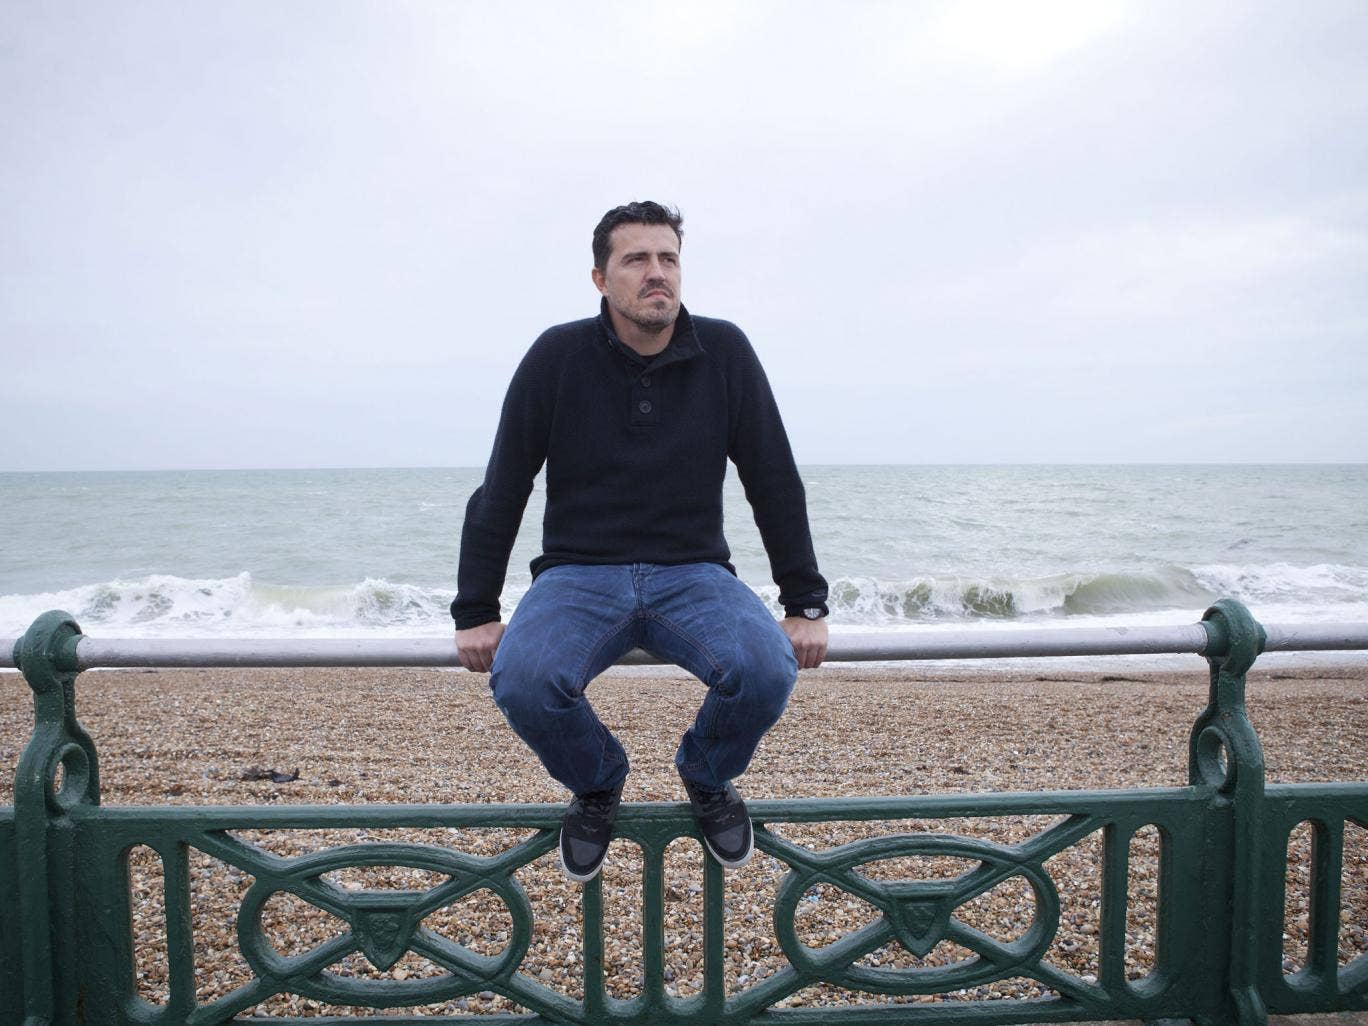 `Oscar Garcia, Manager of Championship side Brighton & Hove Albion pictured on the promenade in Hove